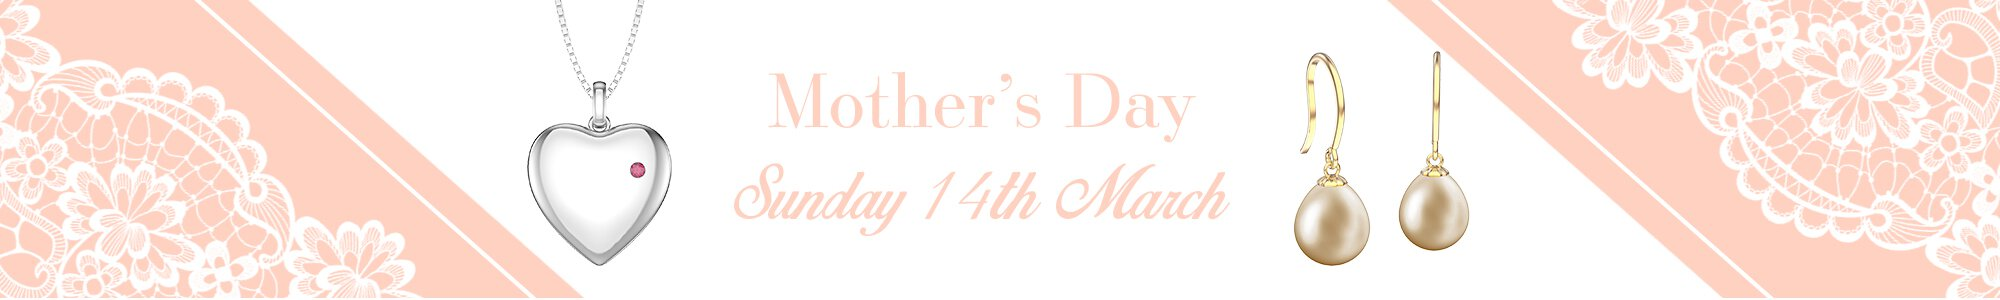 Find the Perfect Mothers Day Gift - Sunday 14 March 2021